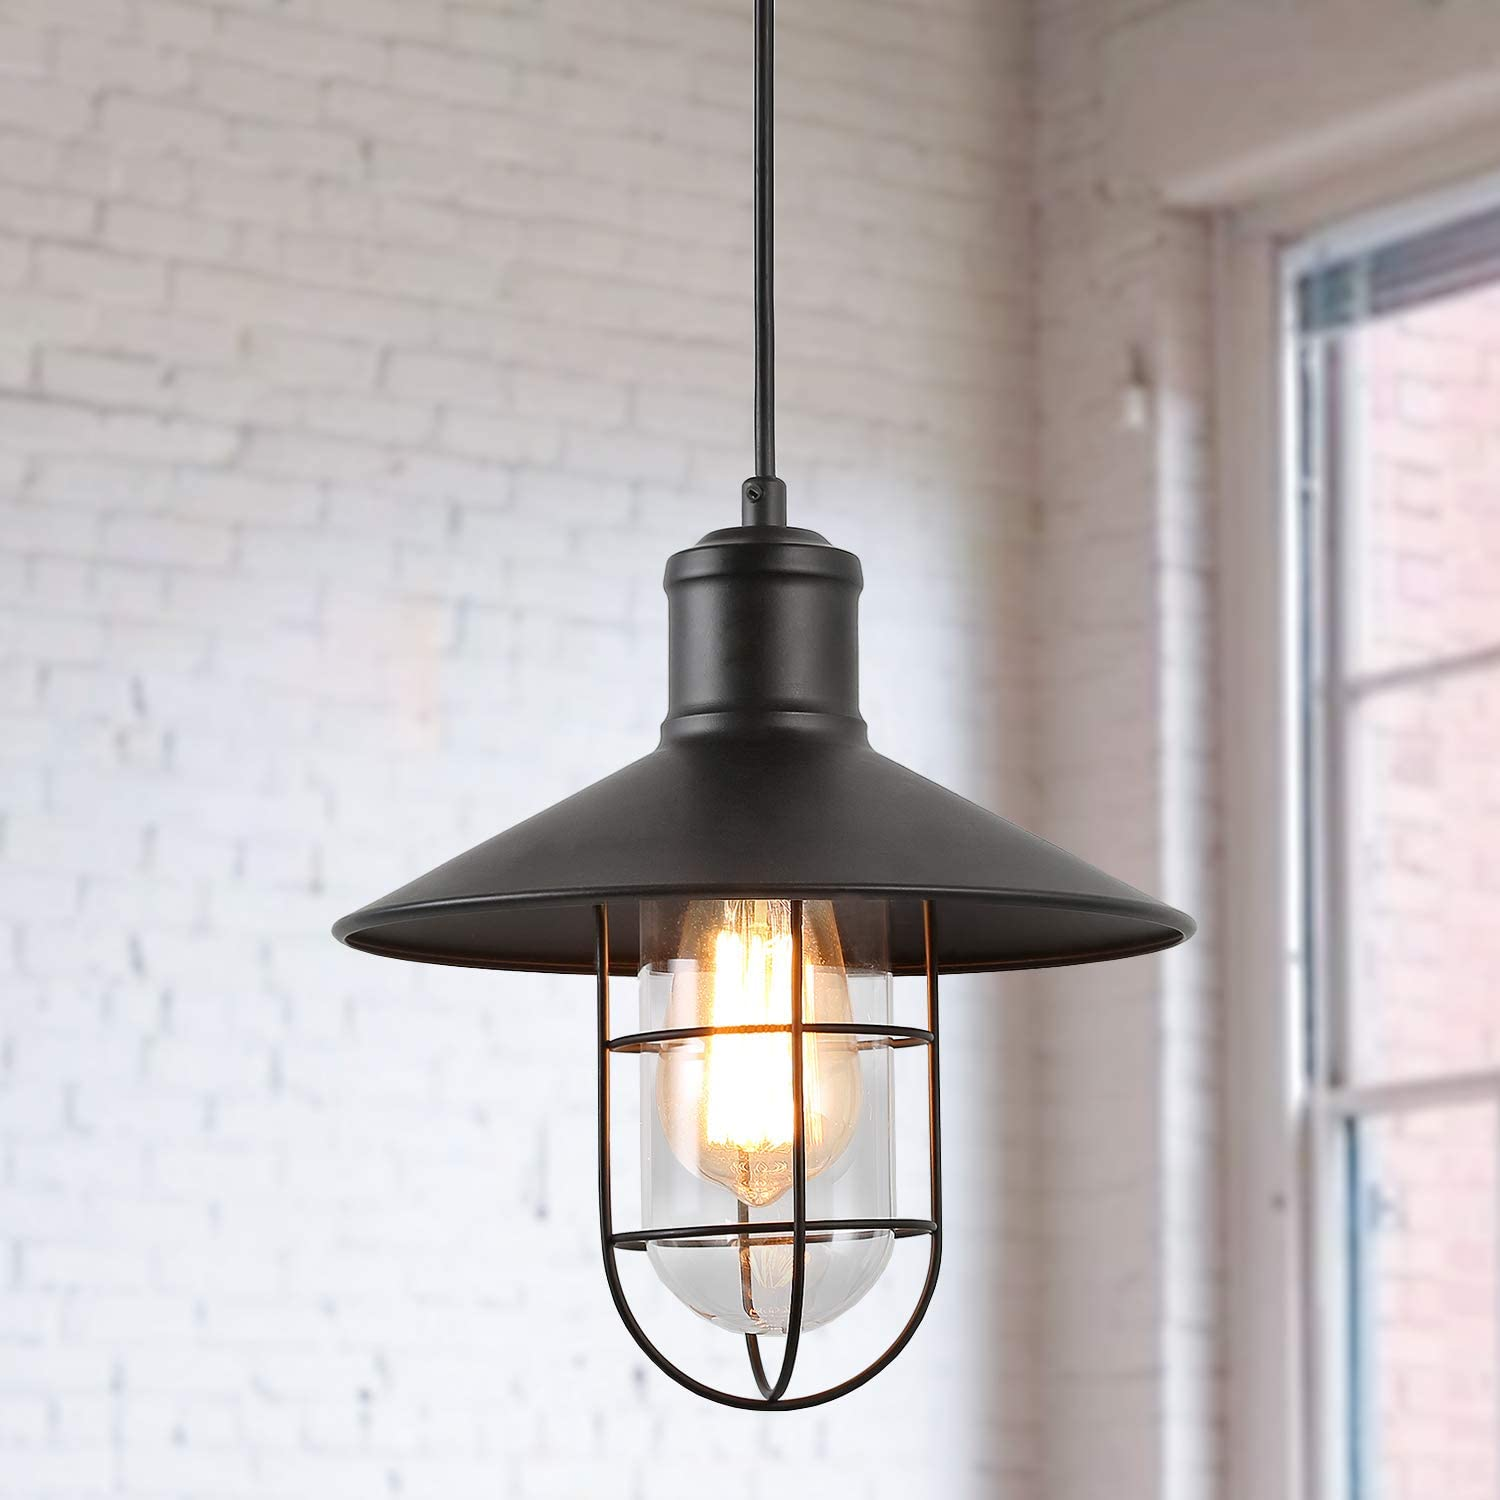 KSANA Industrial Pendant Lighting for Kitchen Island, Mini Cage Hanging Light Fixture for Dining & Living Room, Foyer Bedroom and Entryway